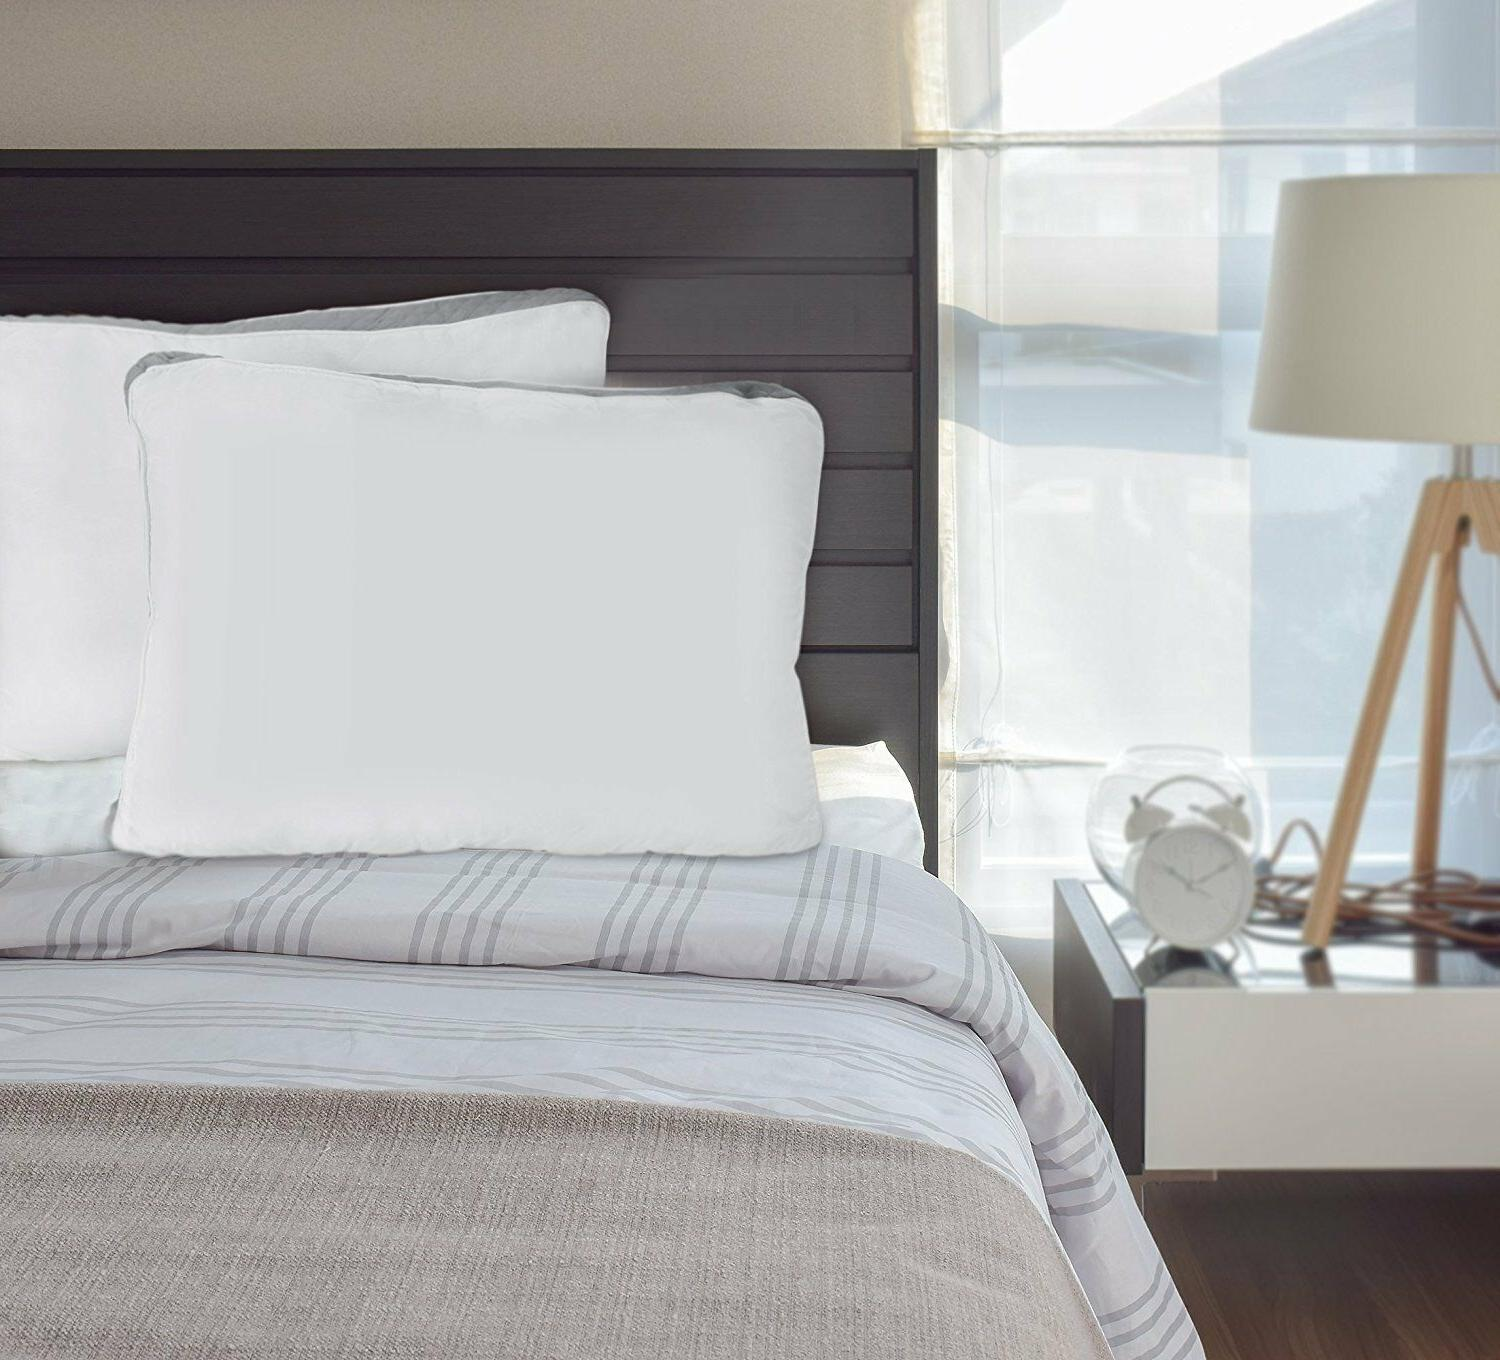 Gusseted Pillow of Bed Pillows Side Back Bedding